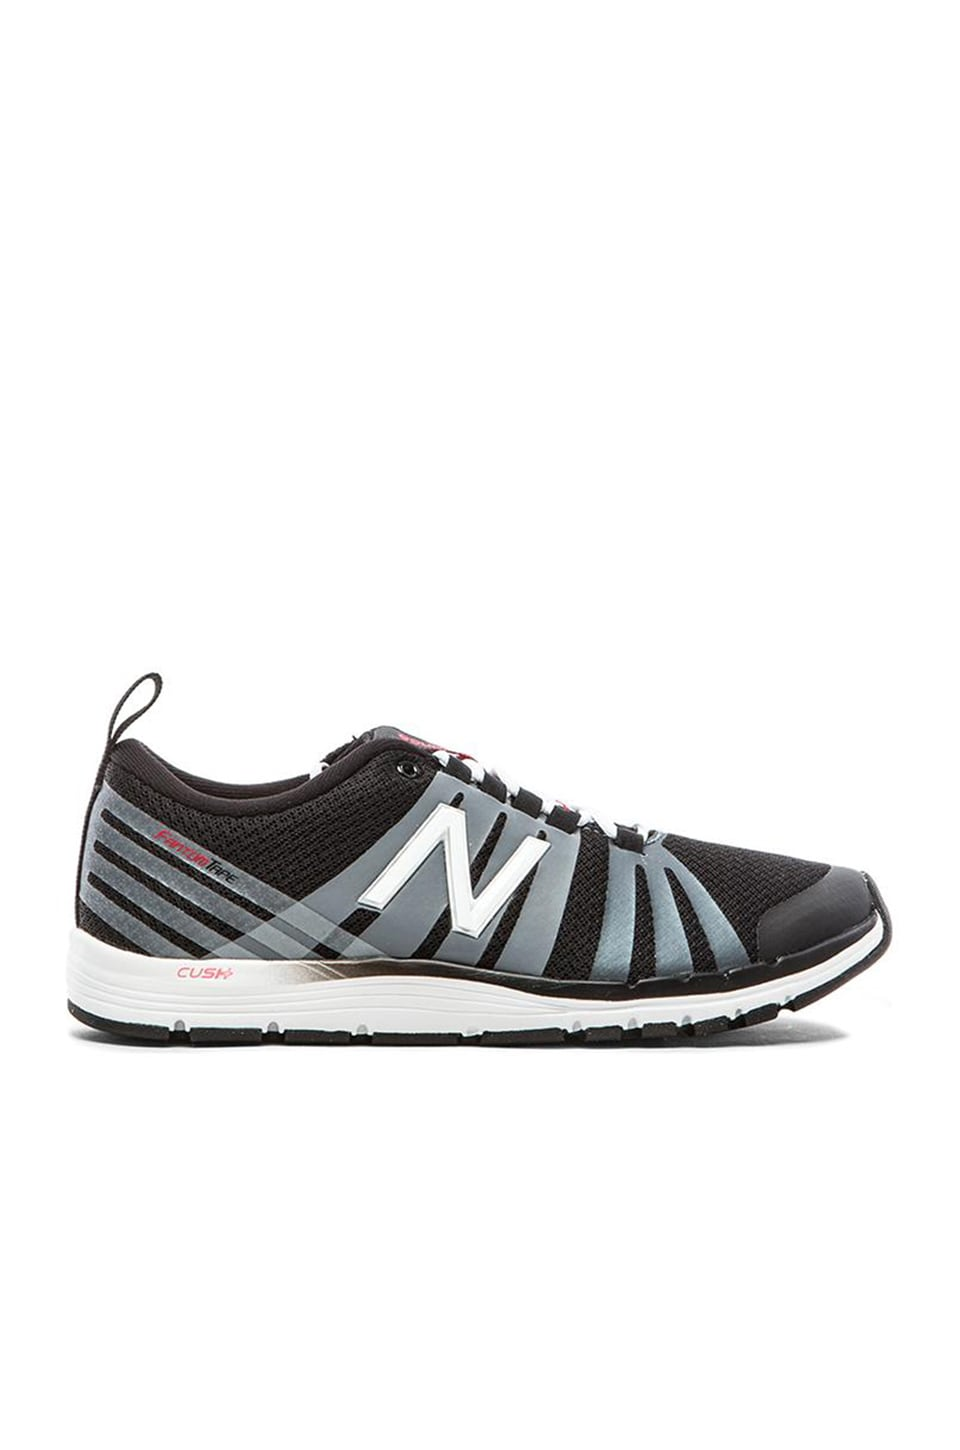 New Balance 811 in Black